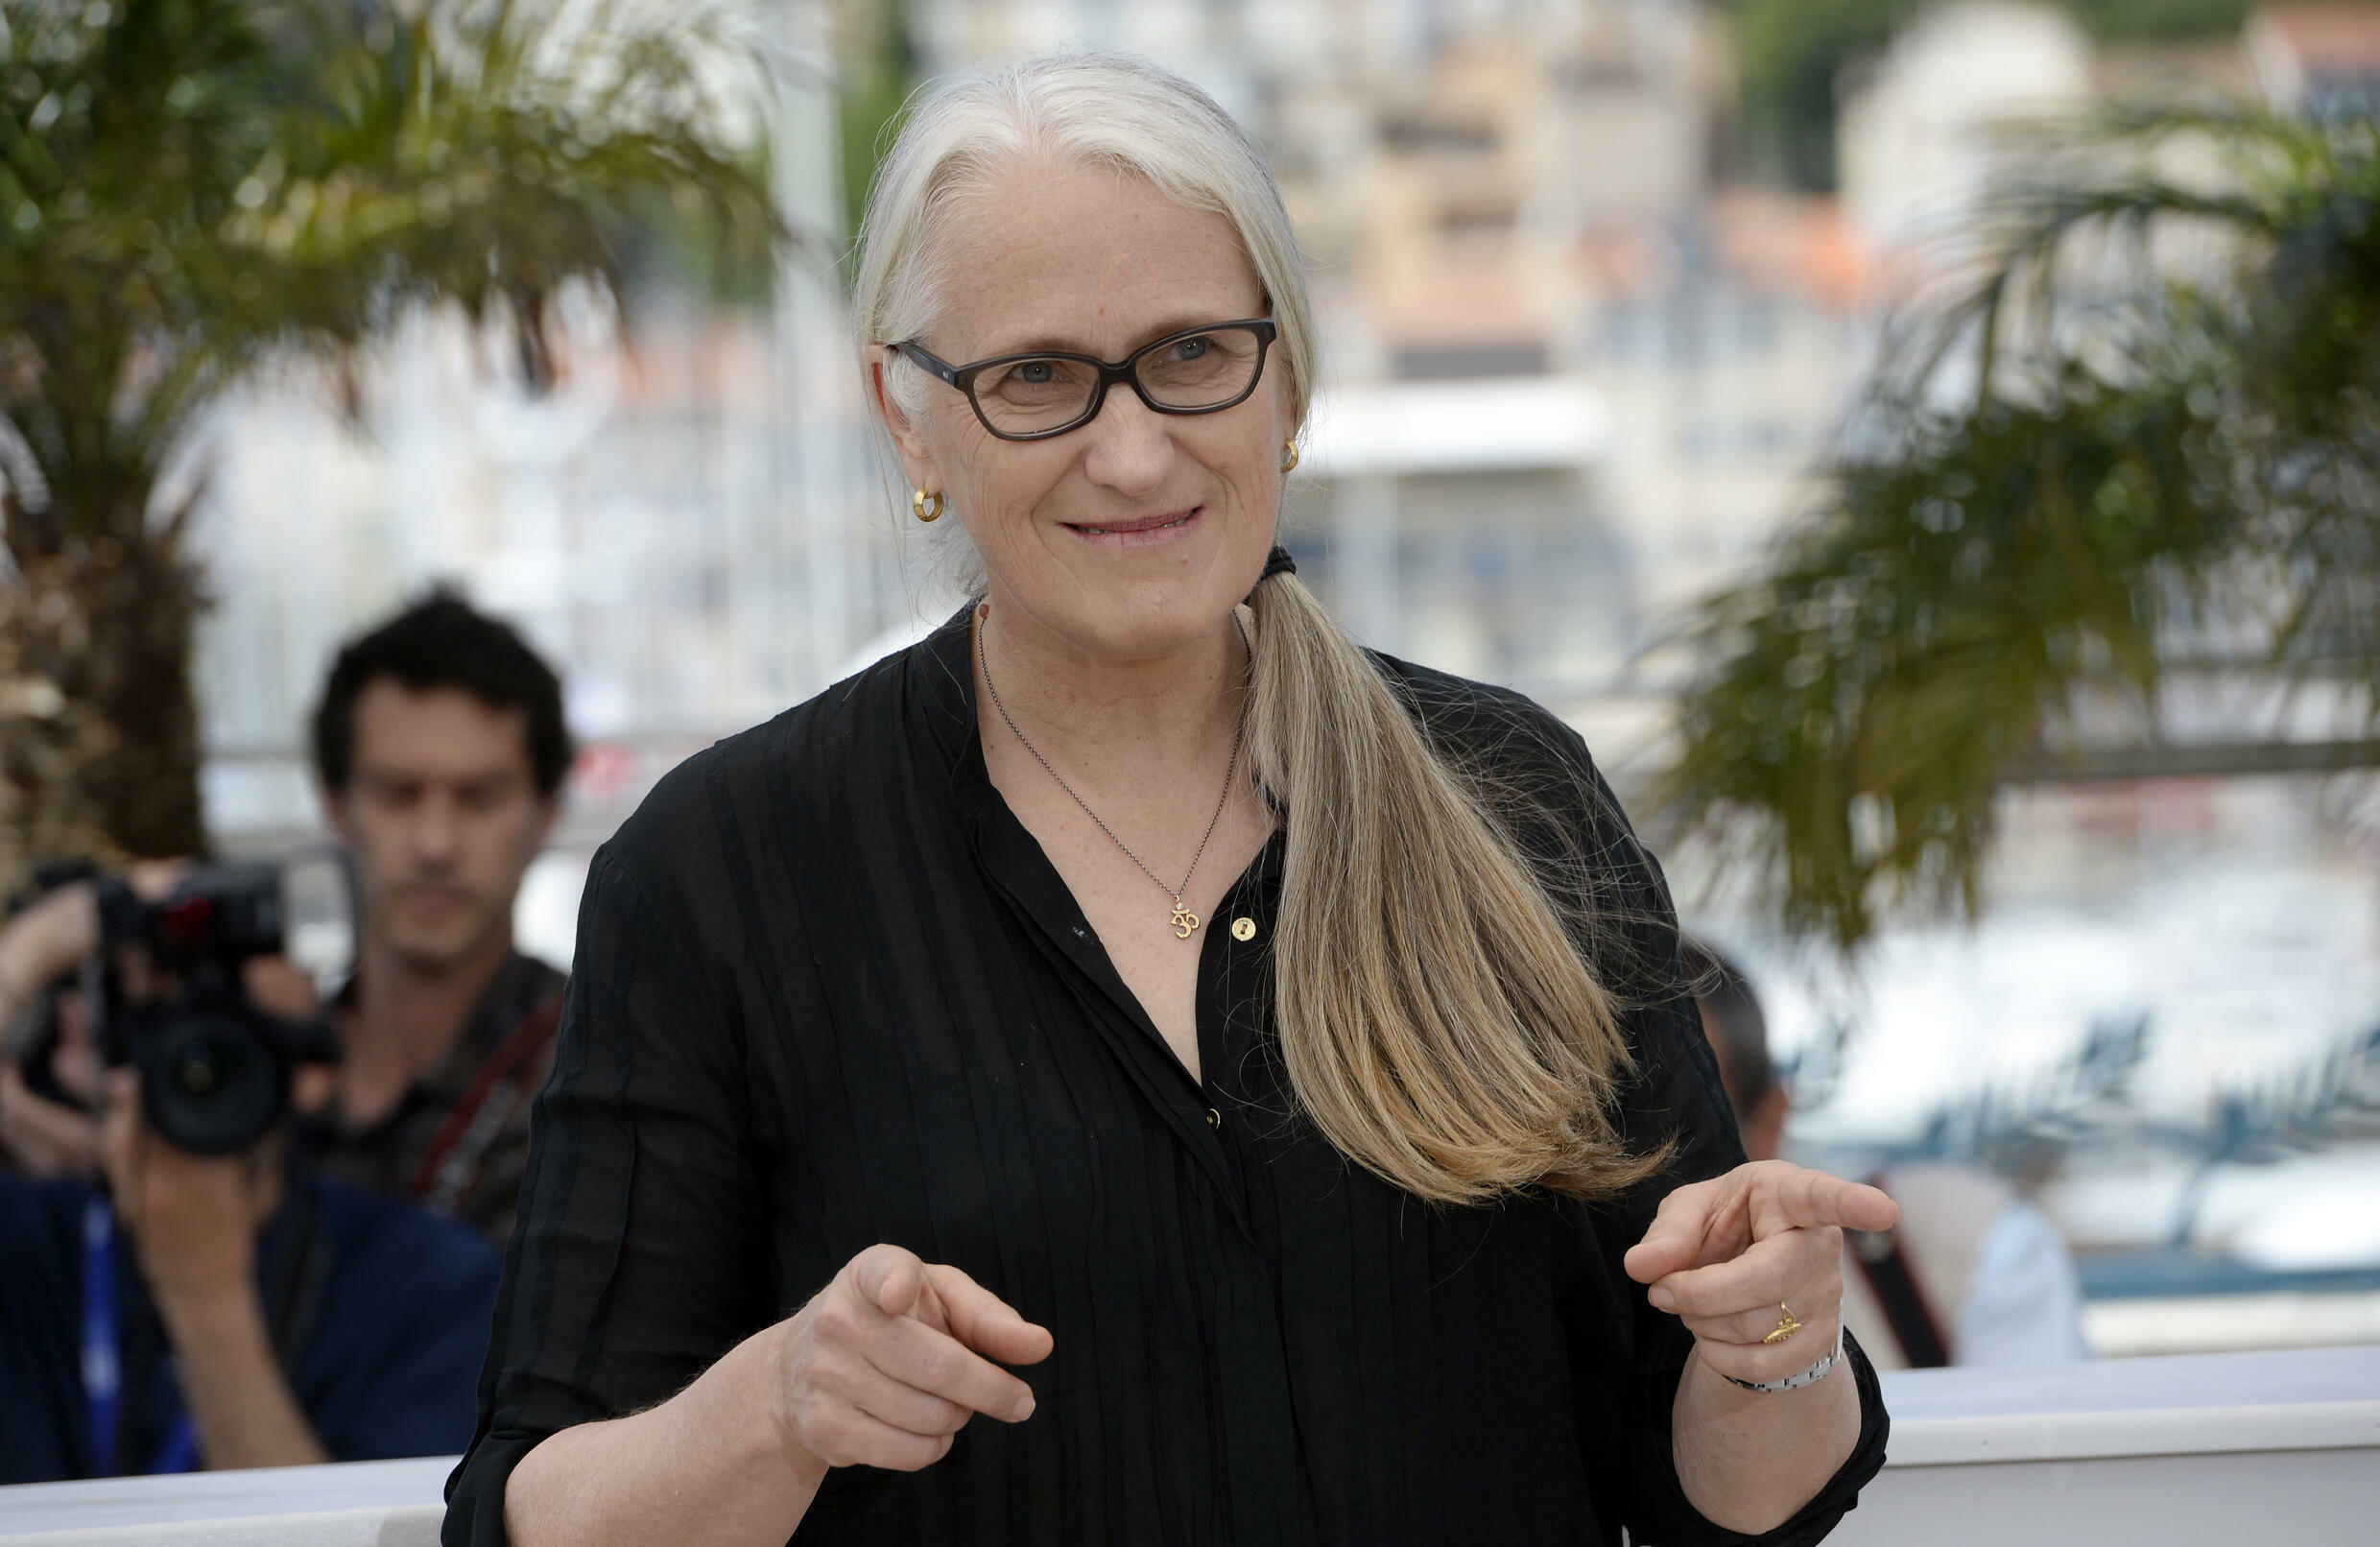 Cannes Jury President Jane Campion, pictured last year in Cannes, has made a name for herself portraying complex and determined female protagonists and knows from experience that the festival is a place of careers.